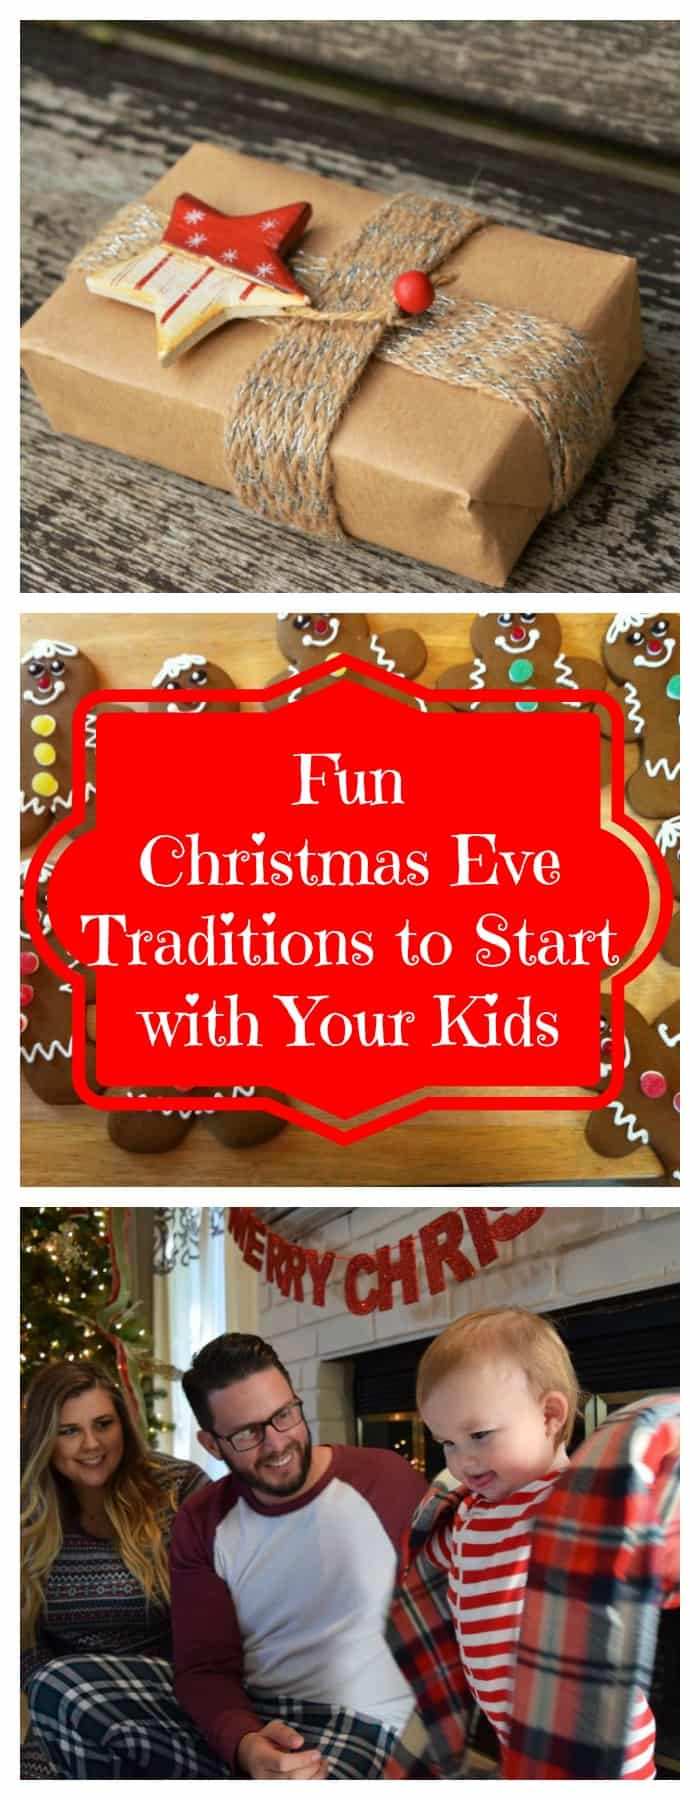 Fun Christmas Eve Traditions to Start With Your Kids